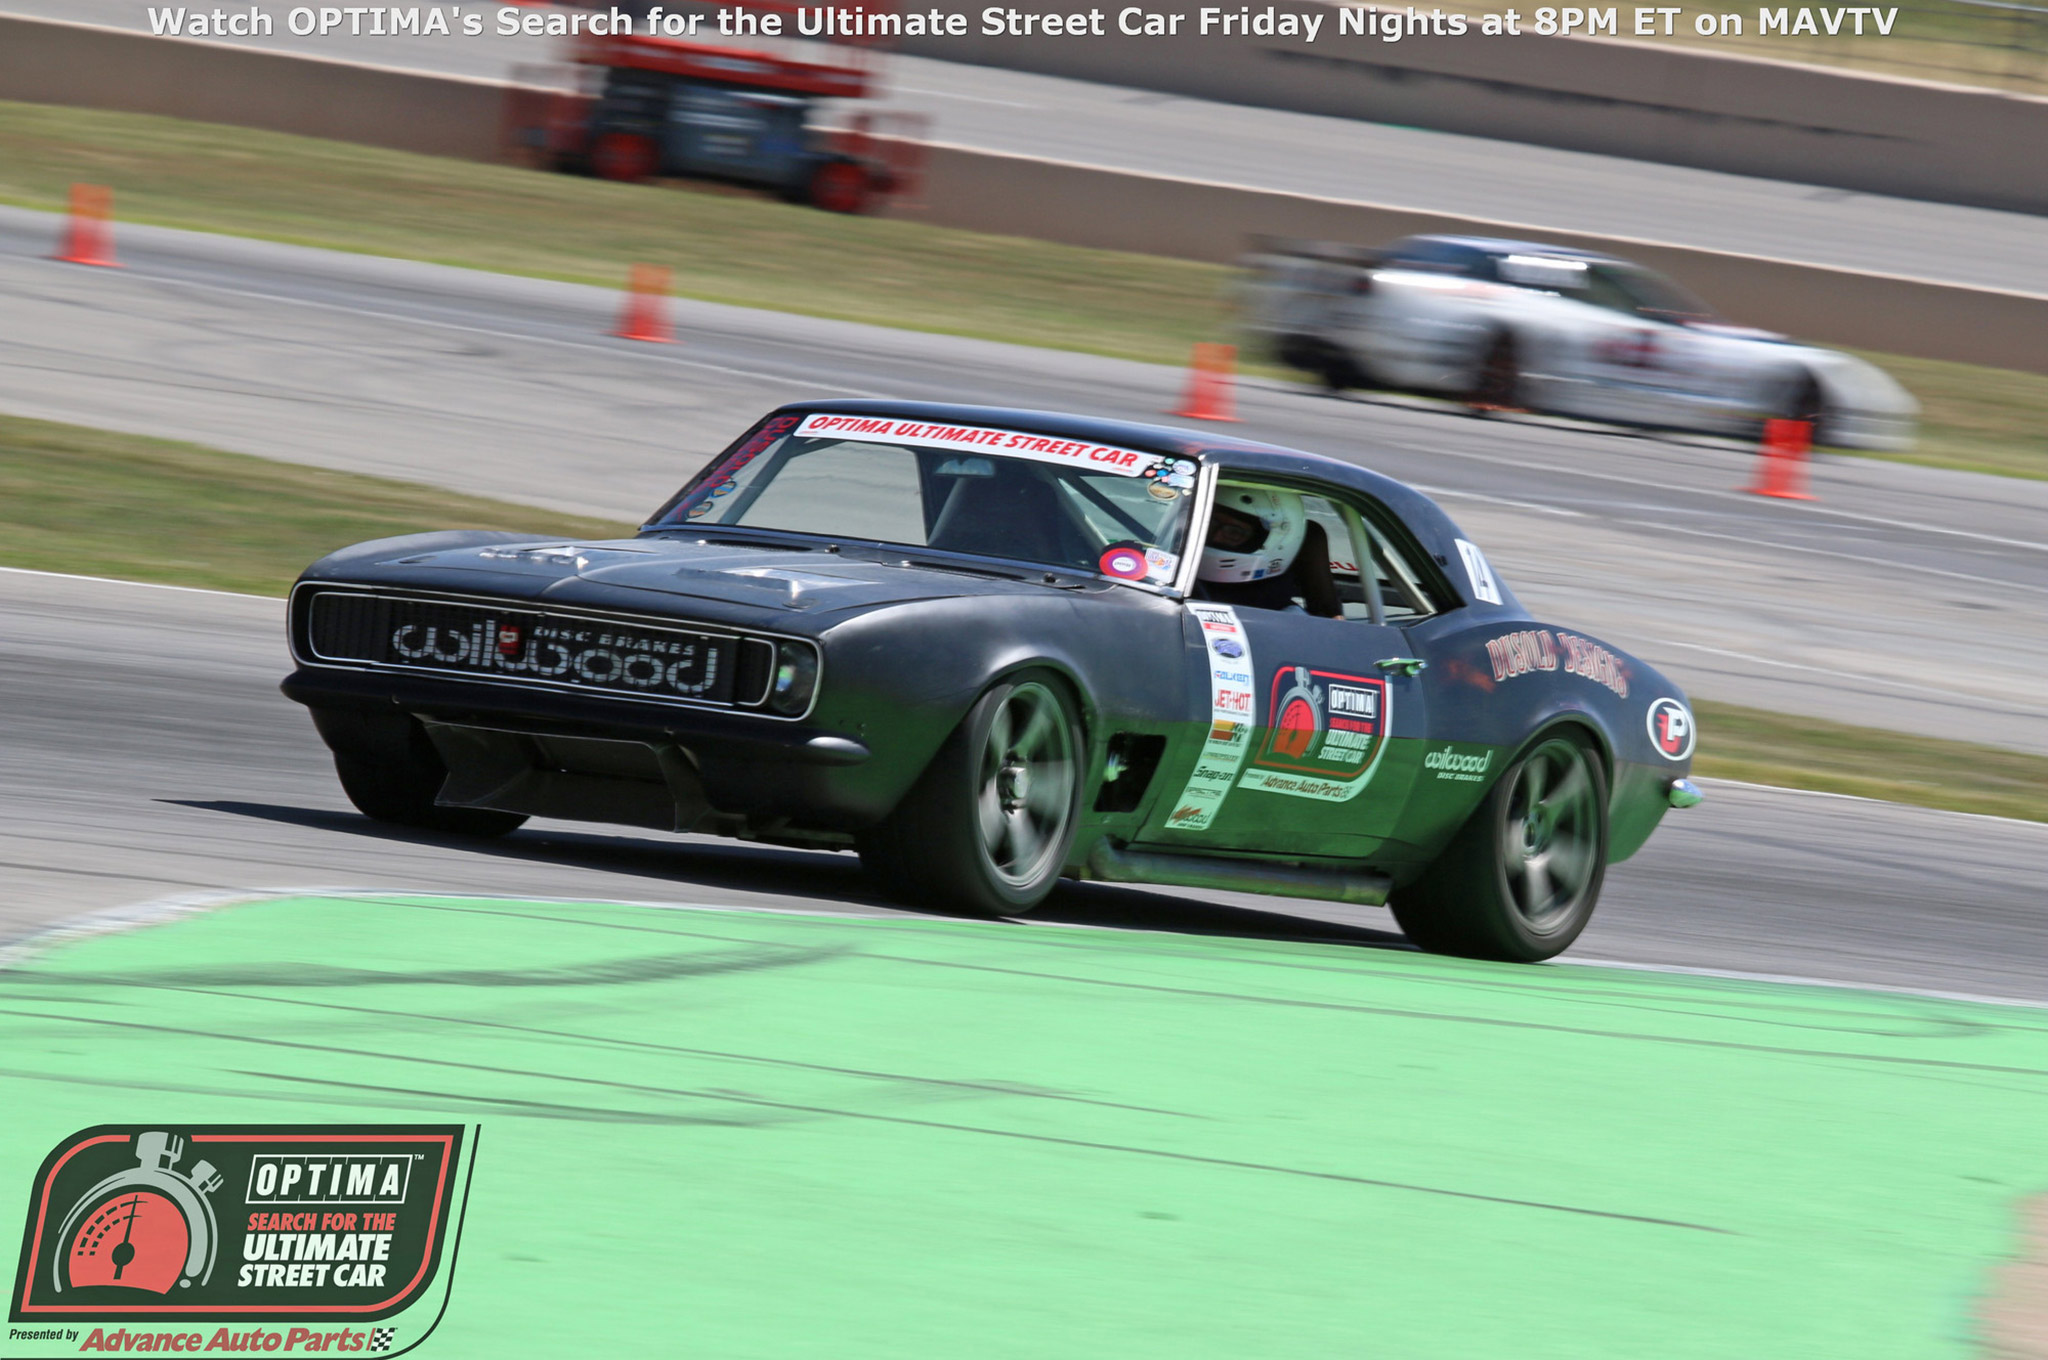 Mike Dusold finished in Third Place in the GTL class (vehicles under 3,200 pounds), but he set a track record for a street car on the Pikes Peak roval, running a fast lap of 1:00.614.